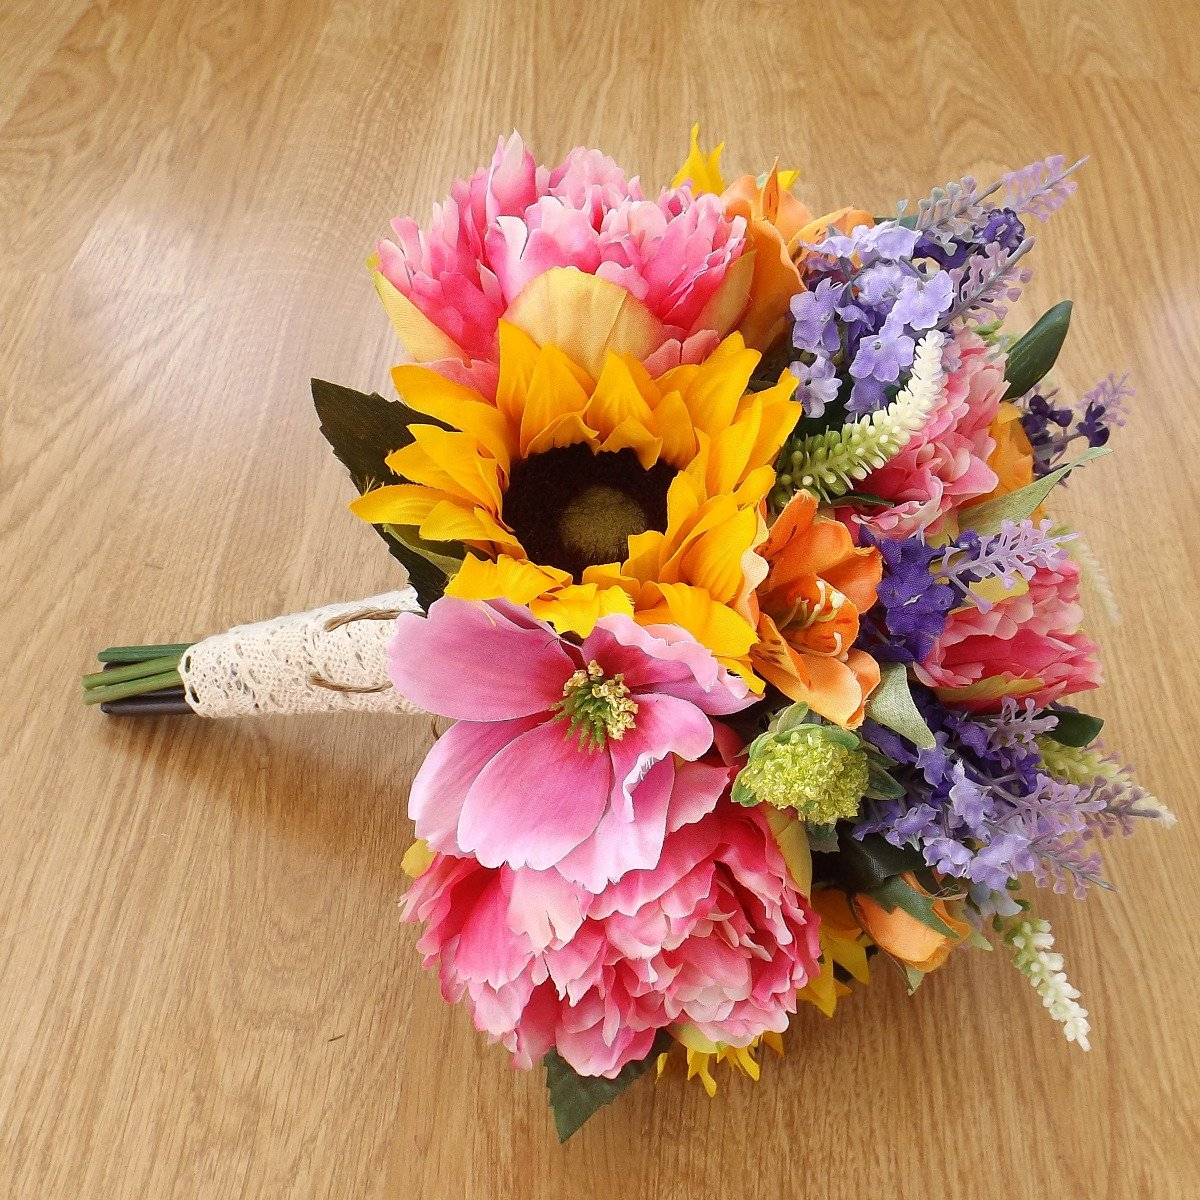 An artificial sunflower & wildflower brides bouquet